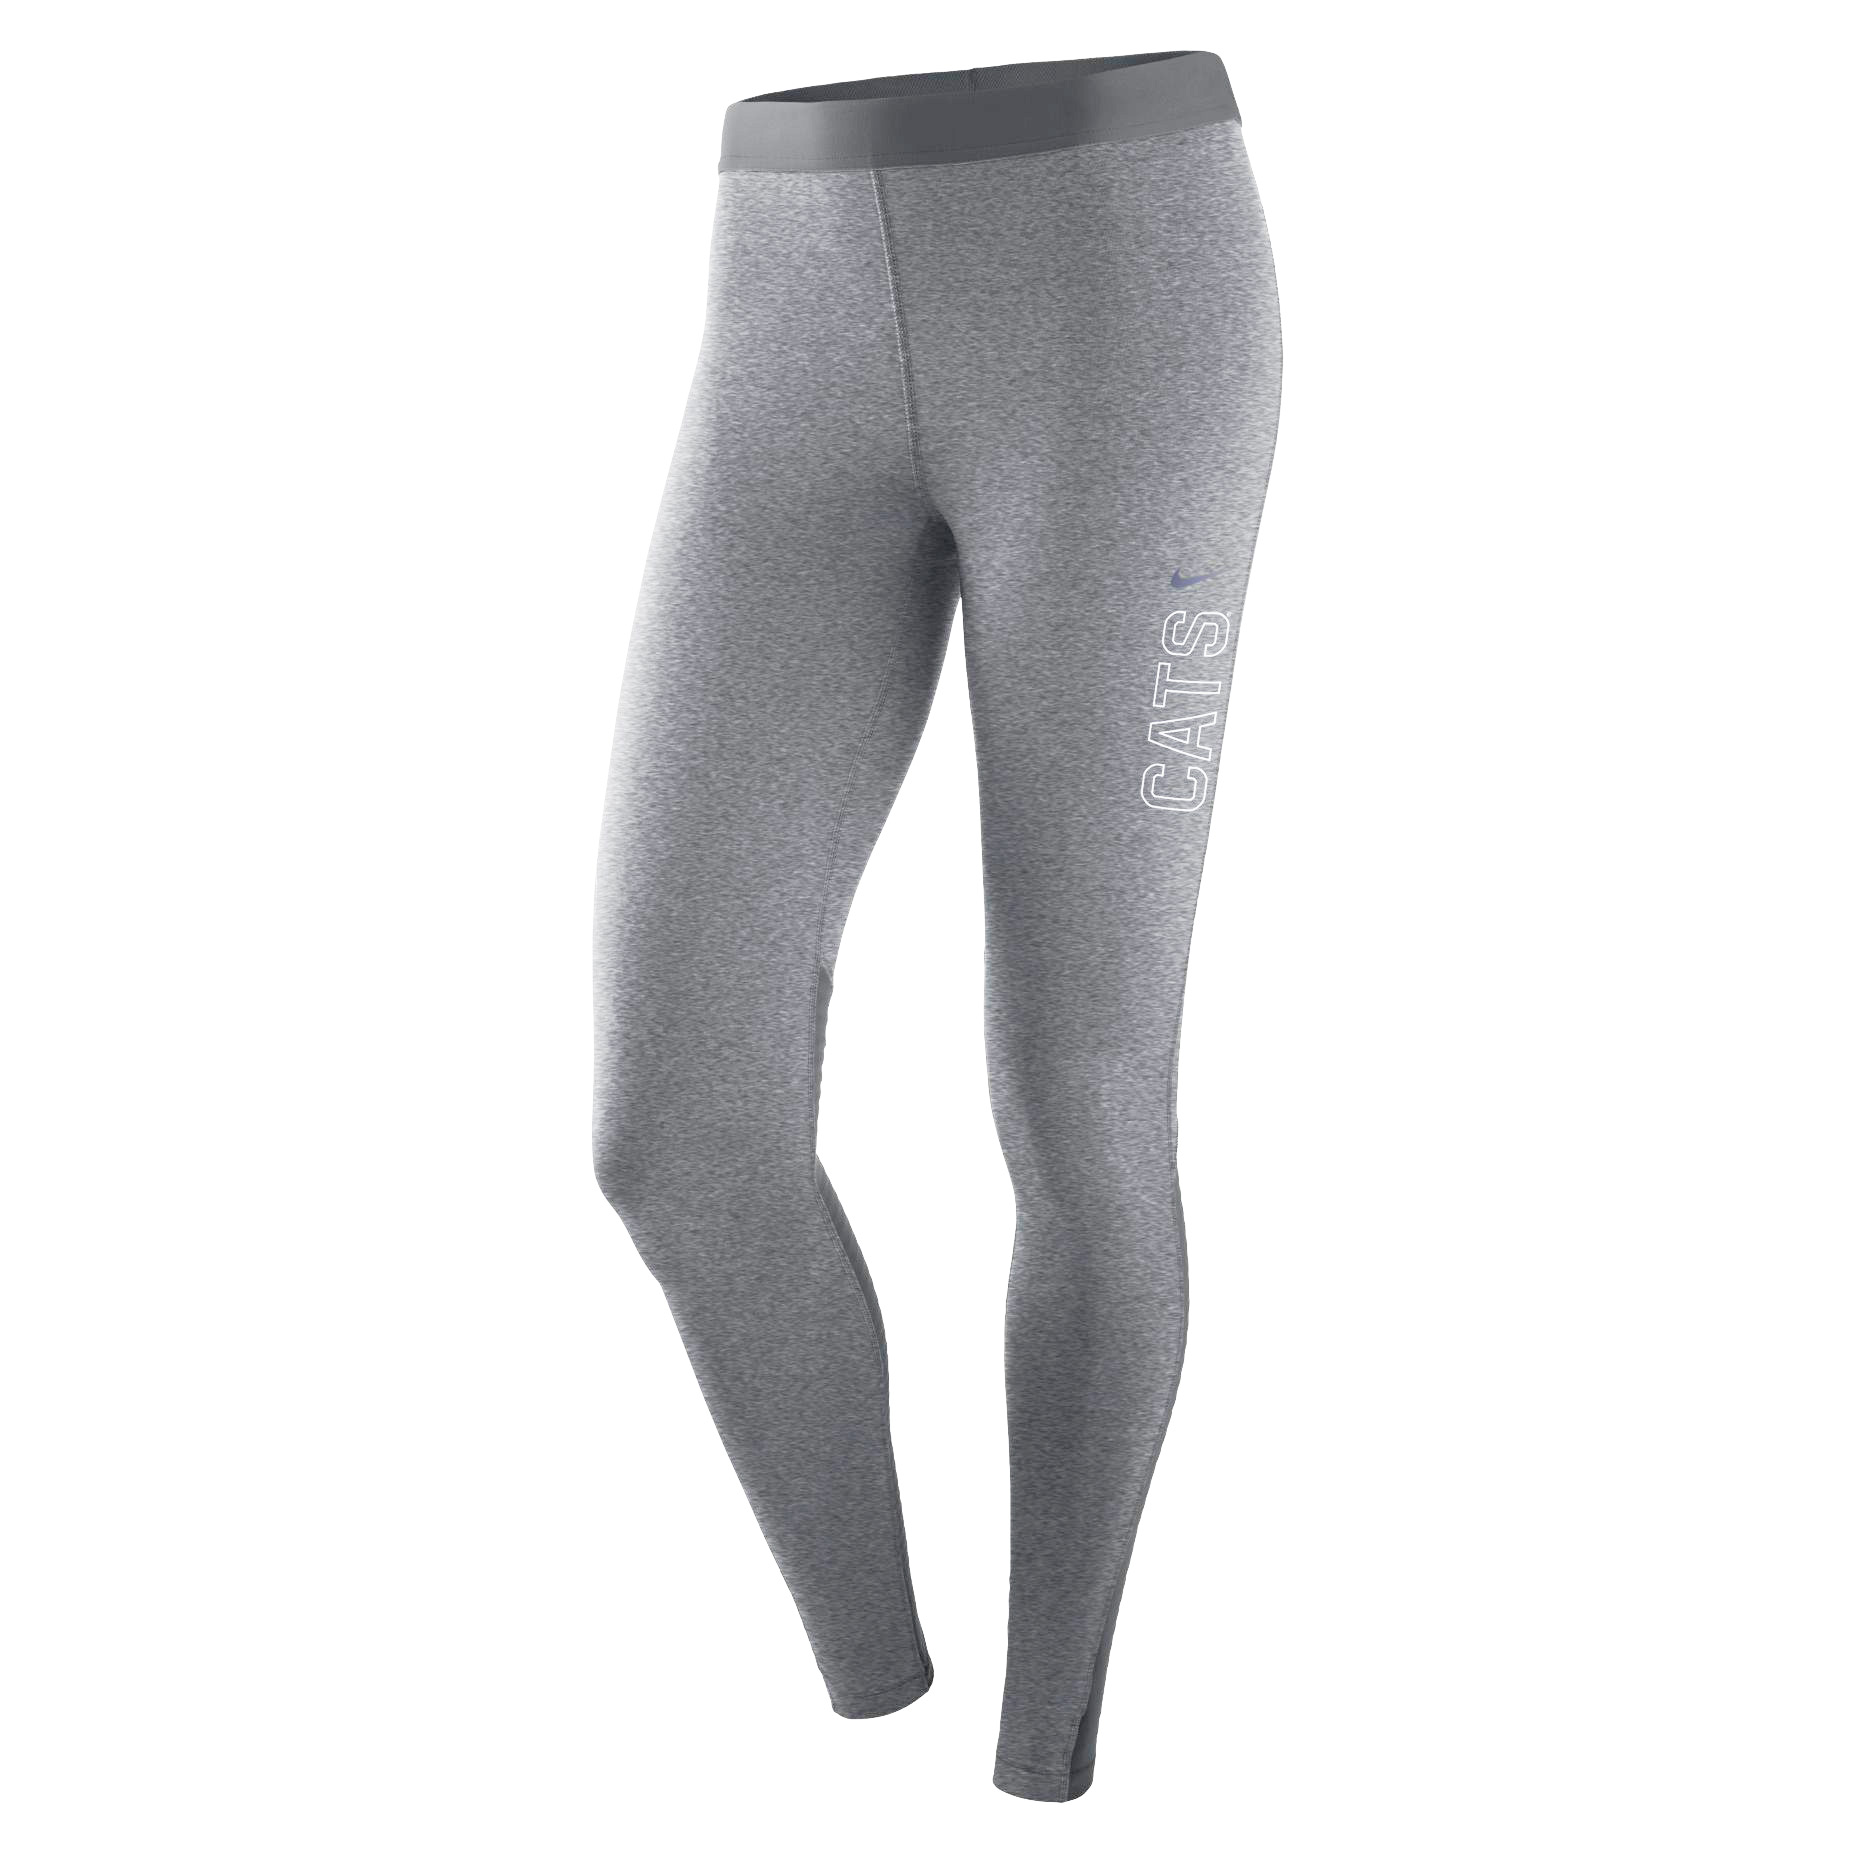 Image For Nike: Arizona CATS Pro Warm Dri-FIT Tights - Grey